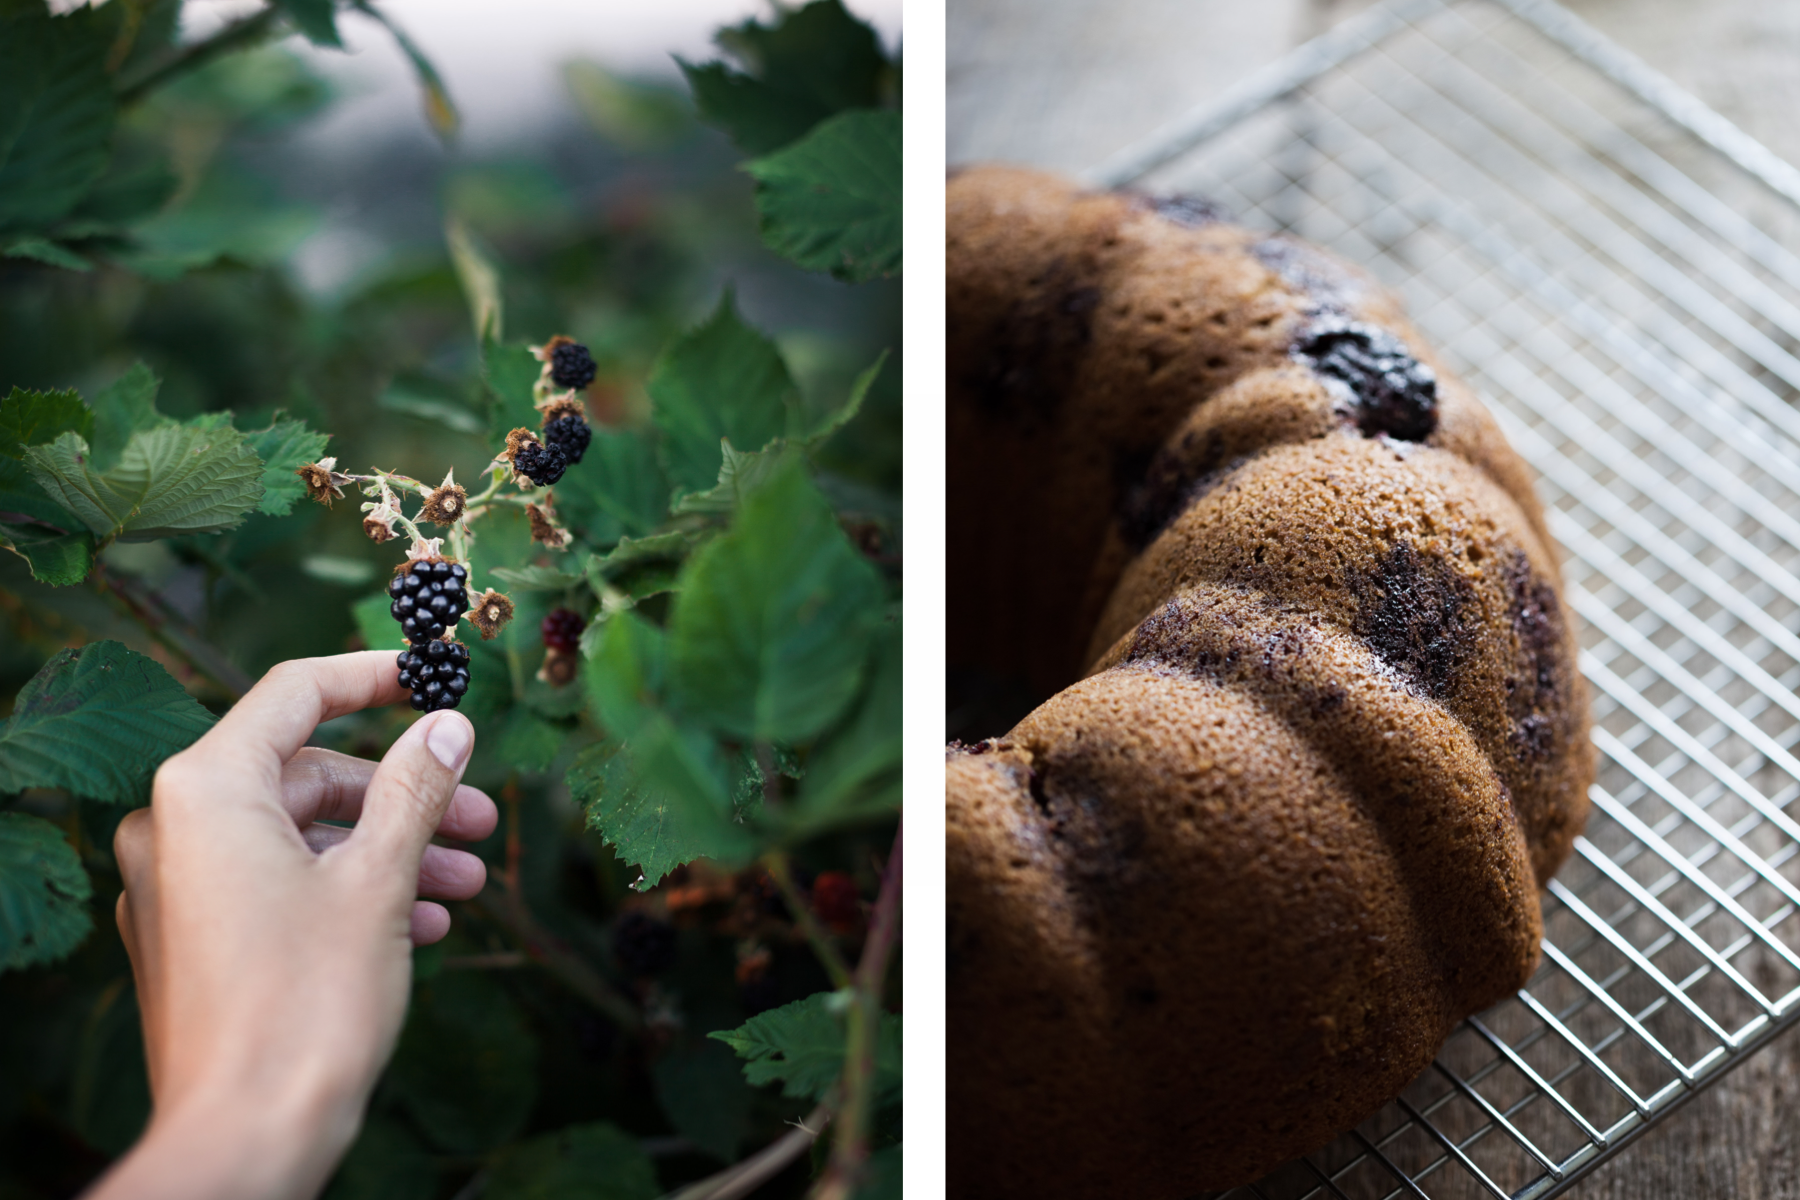 a hand reaching for blackberries on a vine and a side view of a blackberry bundt cake